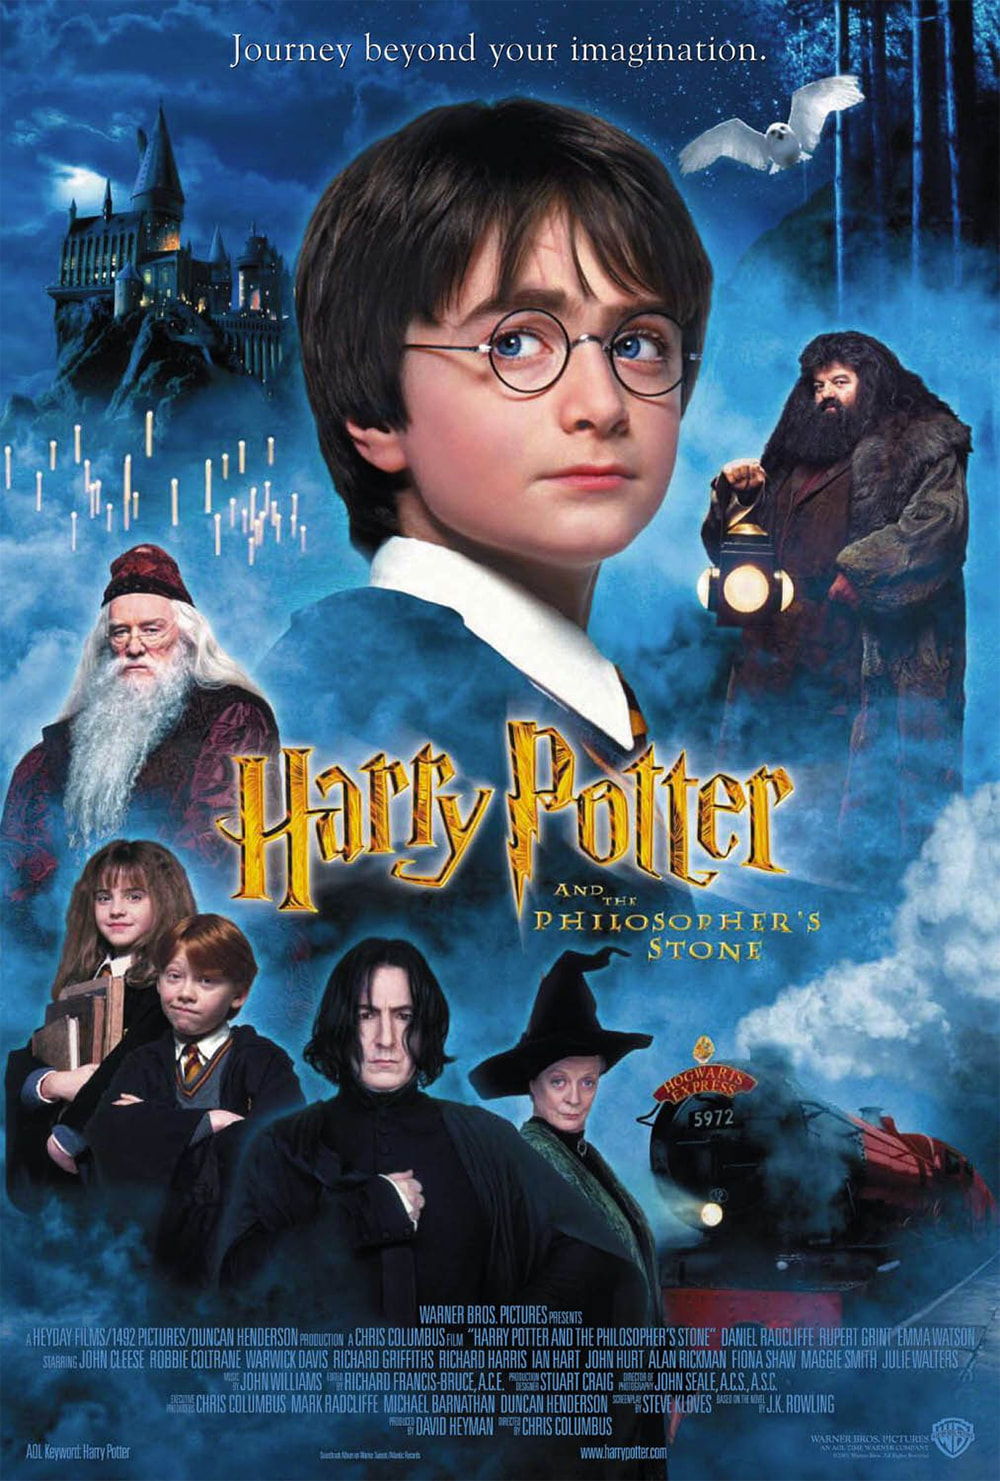 harry-potter-philosophers-stone-theatrical-poster_orig.jpg